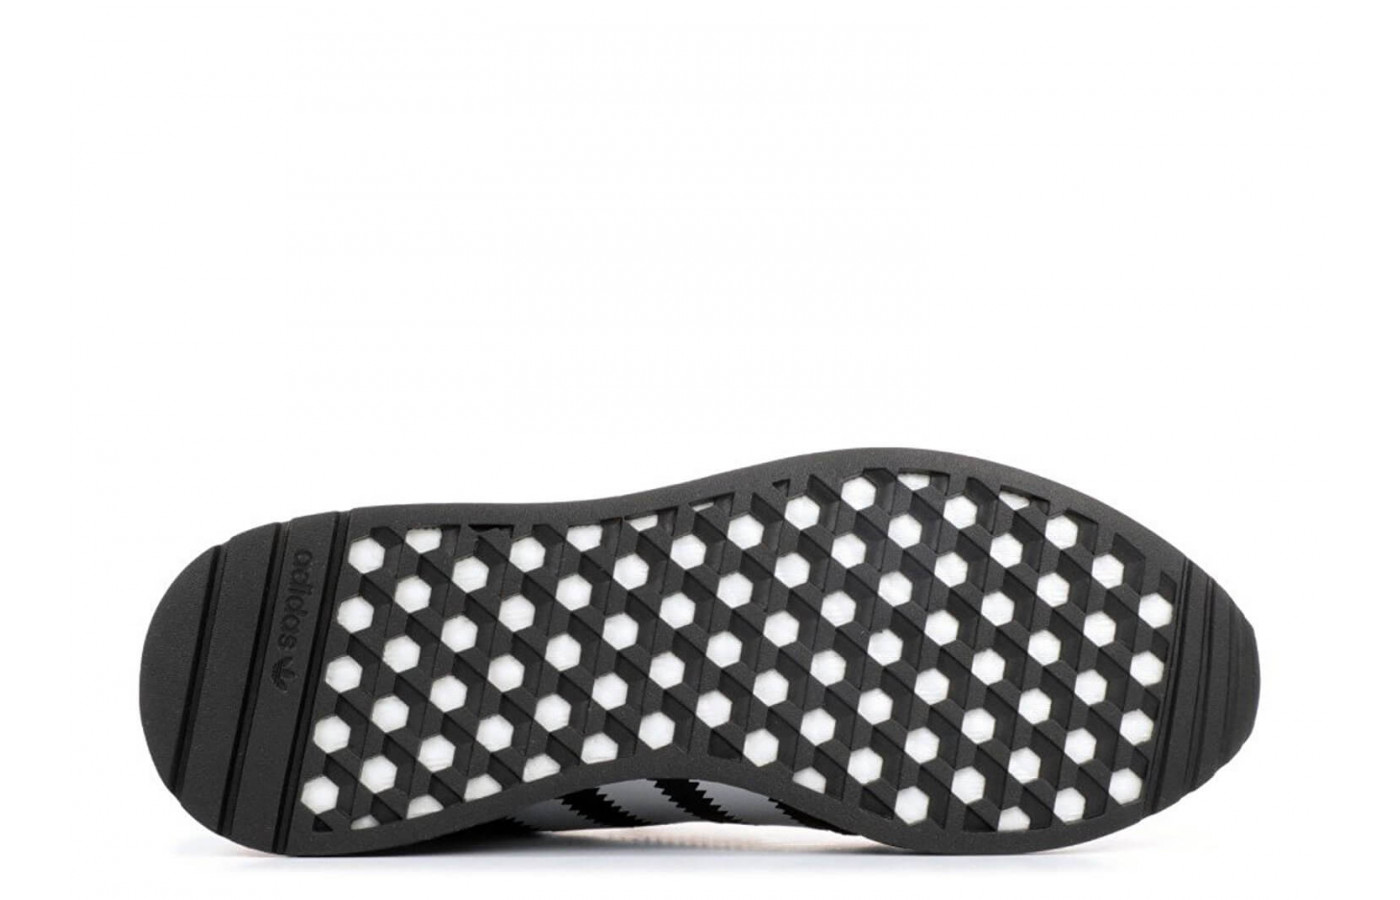 The outsole provides added comfort and traction.